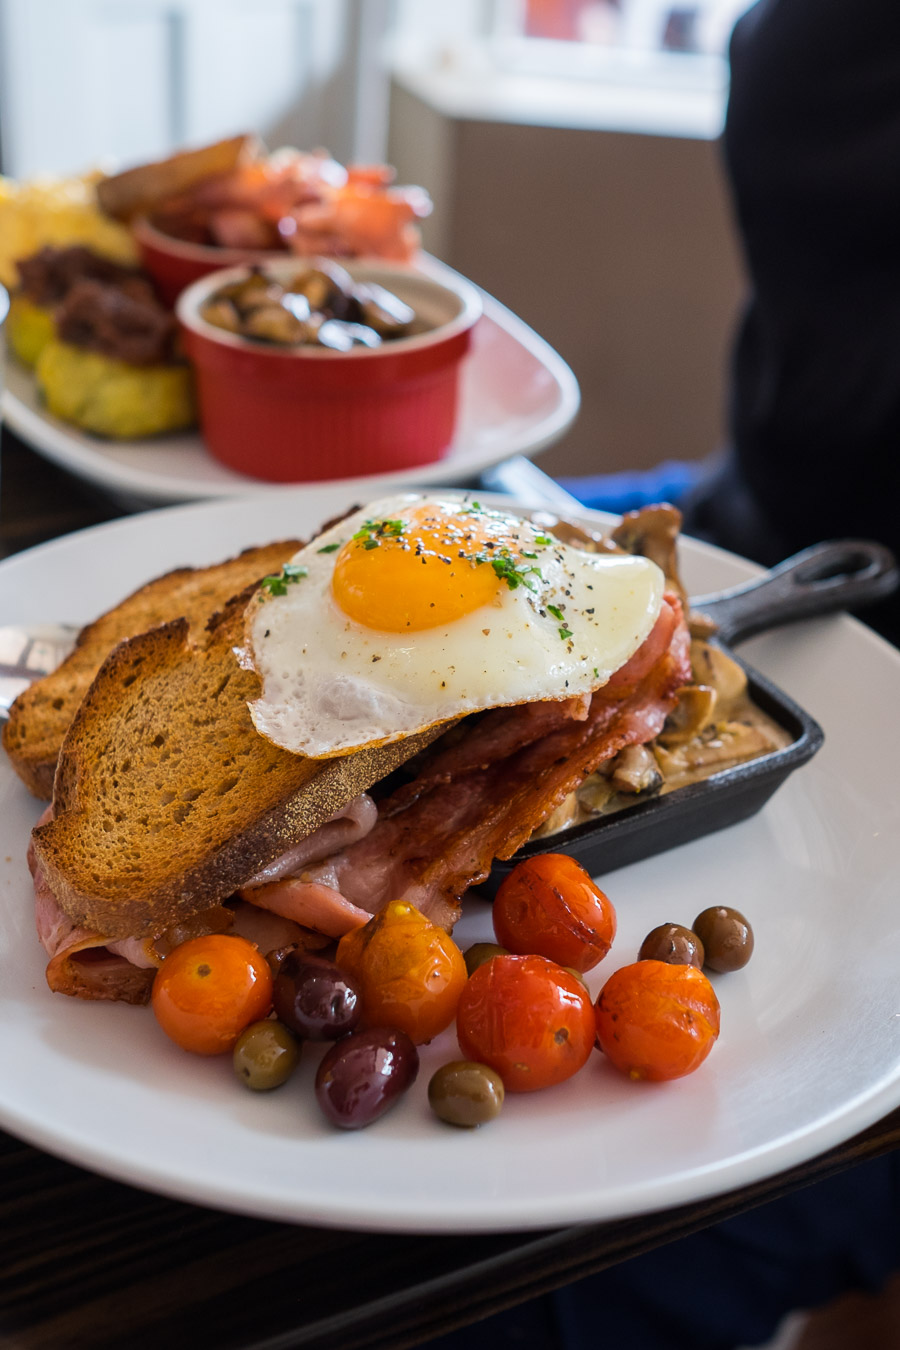 Creamed mushrooms with sunny side egg, bacon, roasted cherry tomatoes, olives and rye toast (AU$18.50)